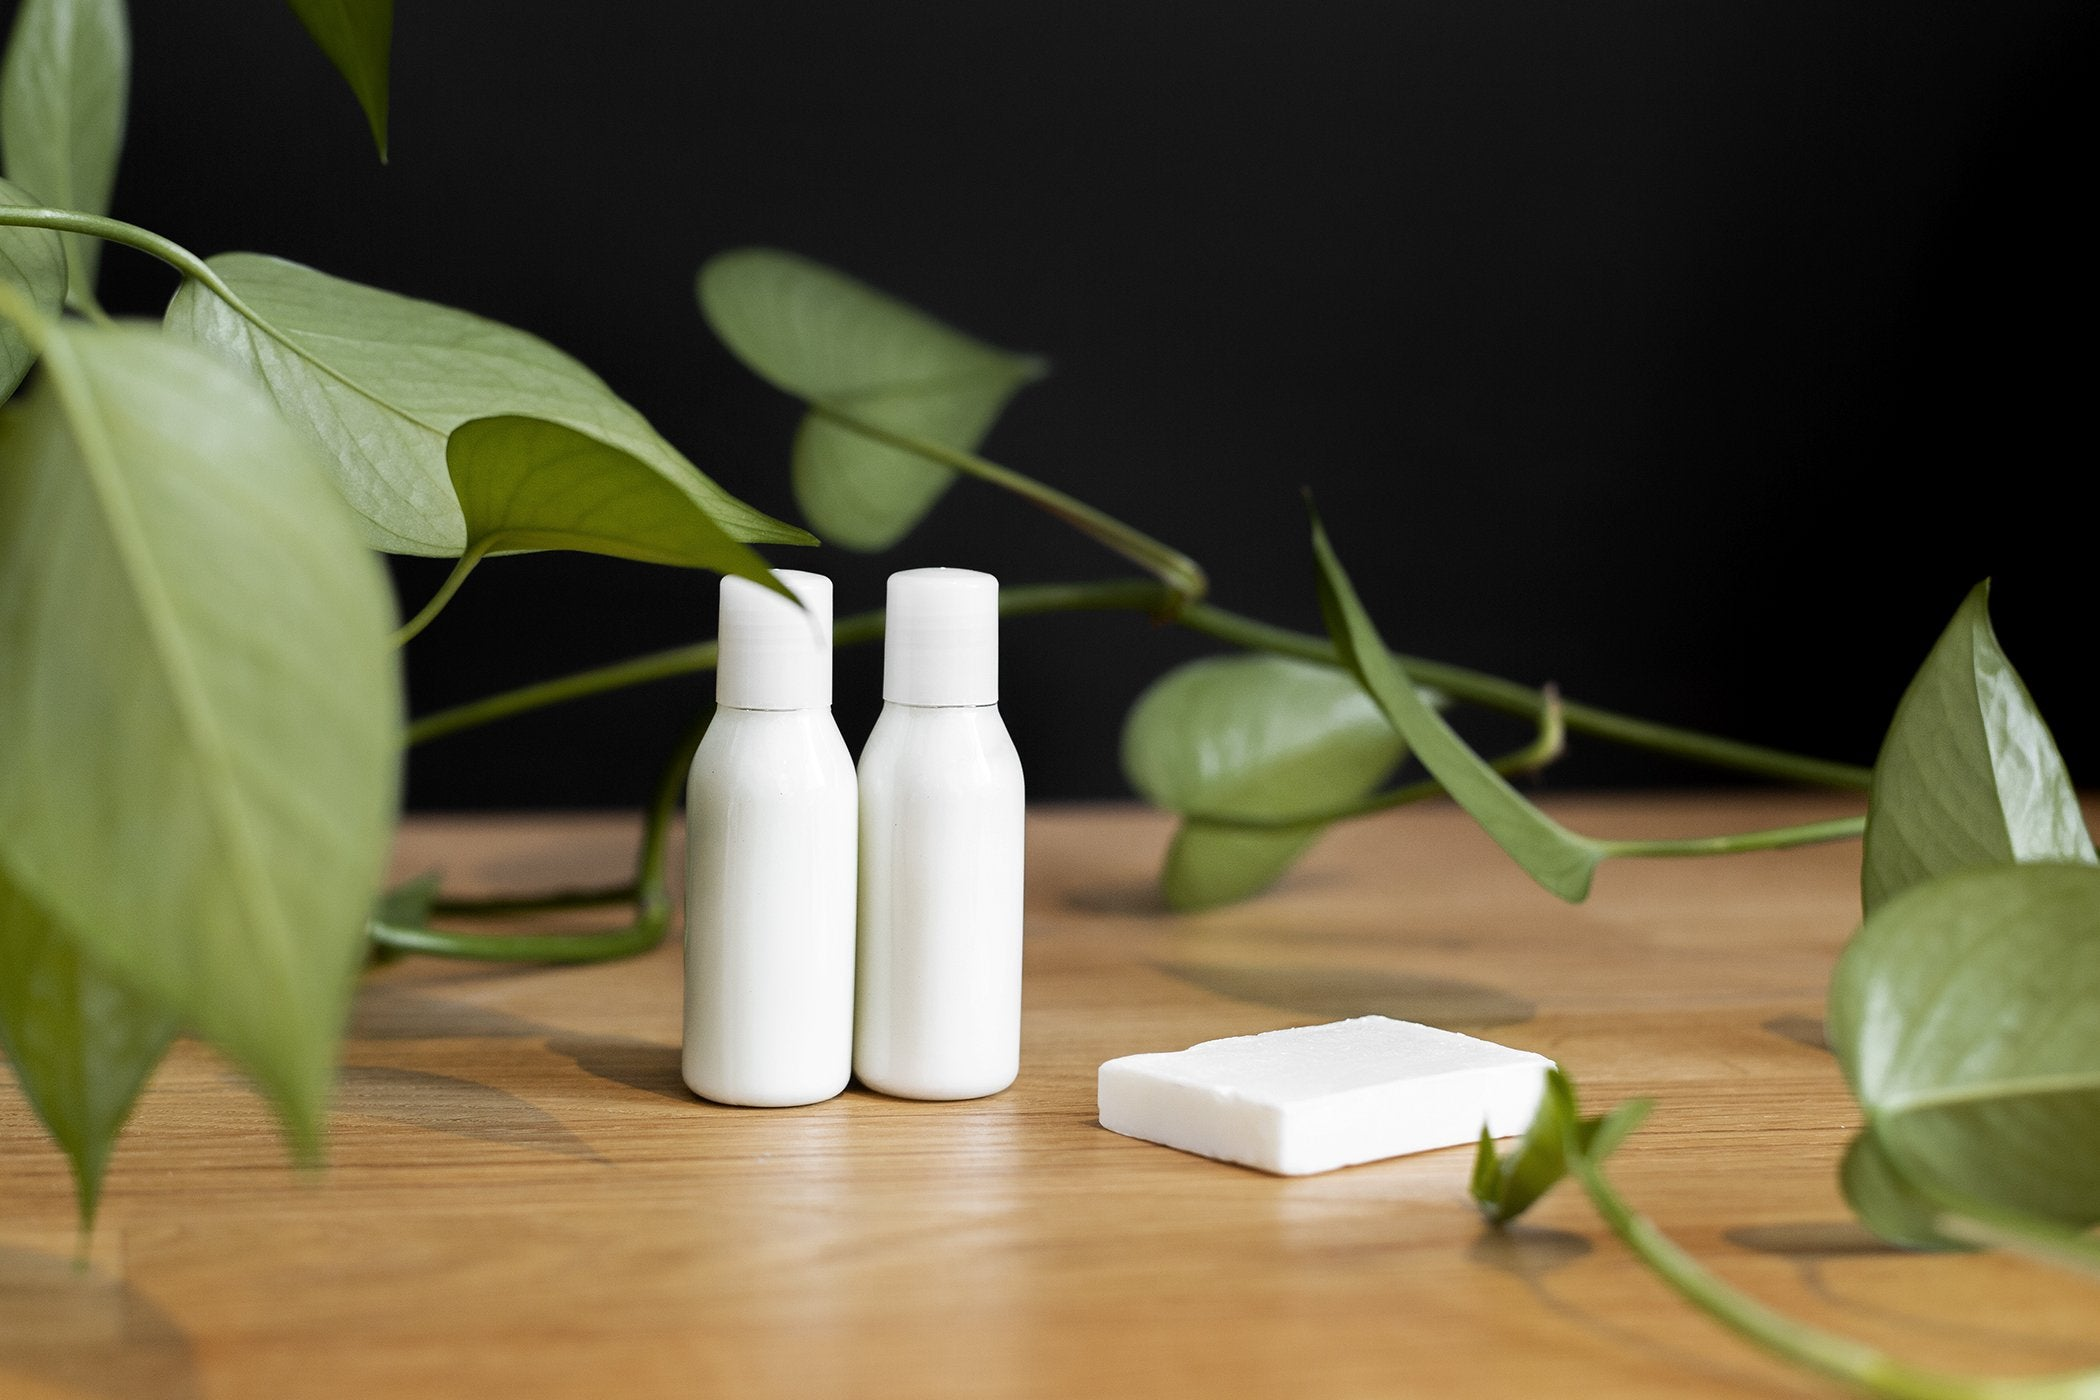 White label skincare products sit on a wooden surface